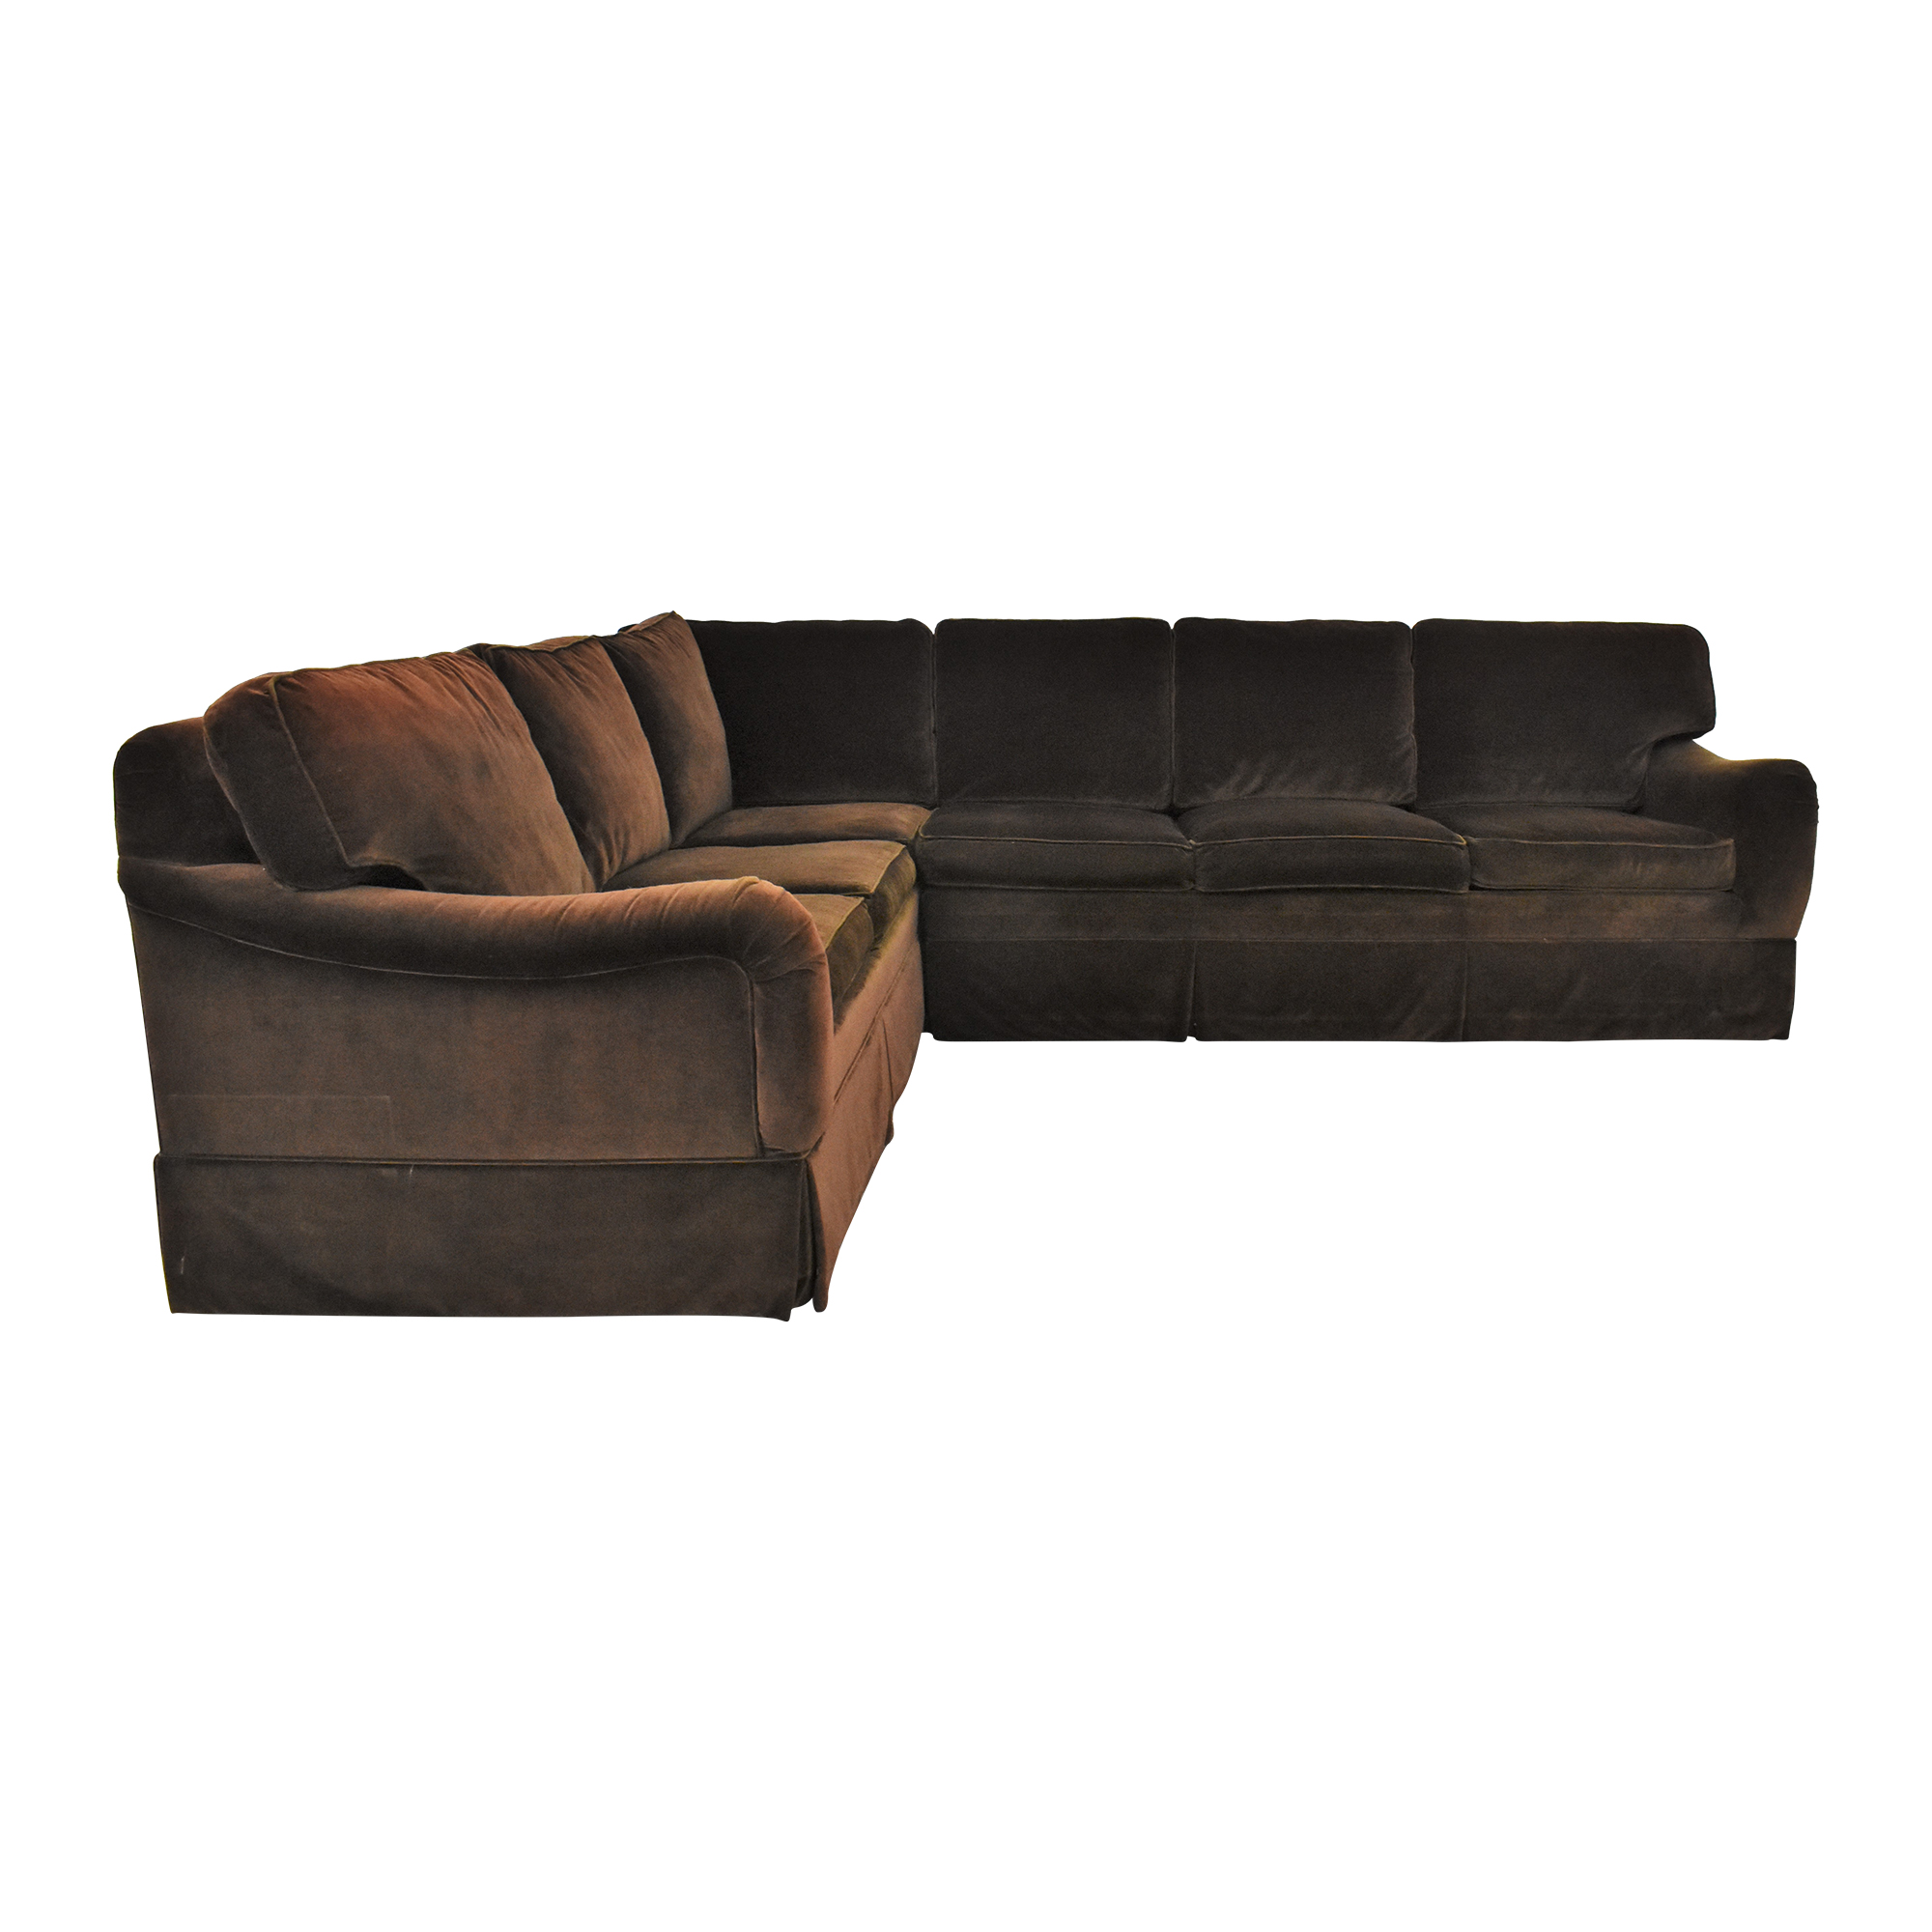 Ethan Allen Ethan Allen L Shaped Sectional Sofa brown